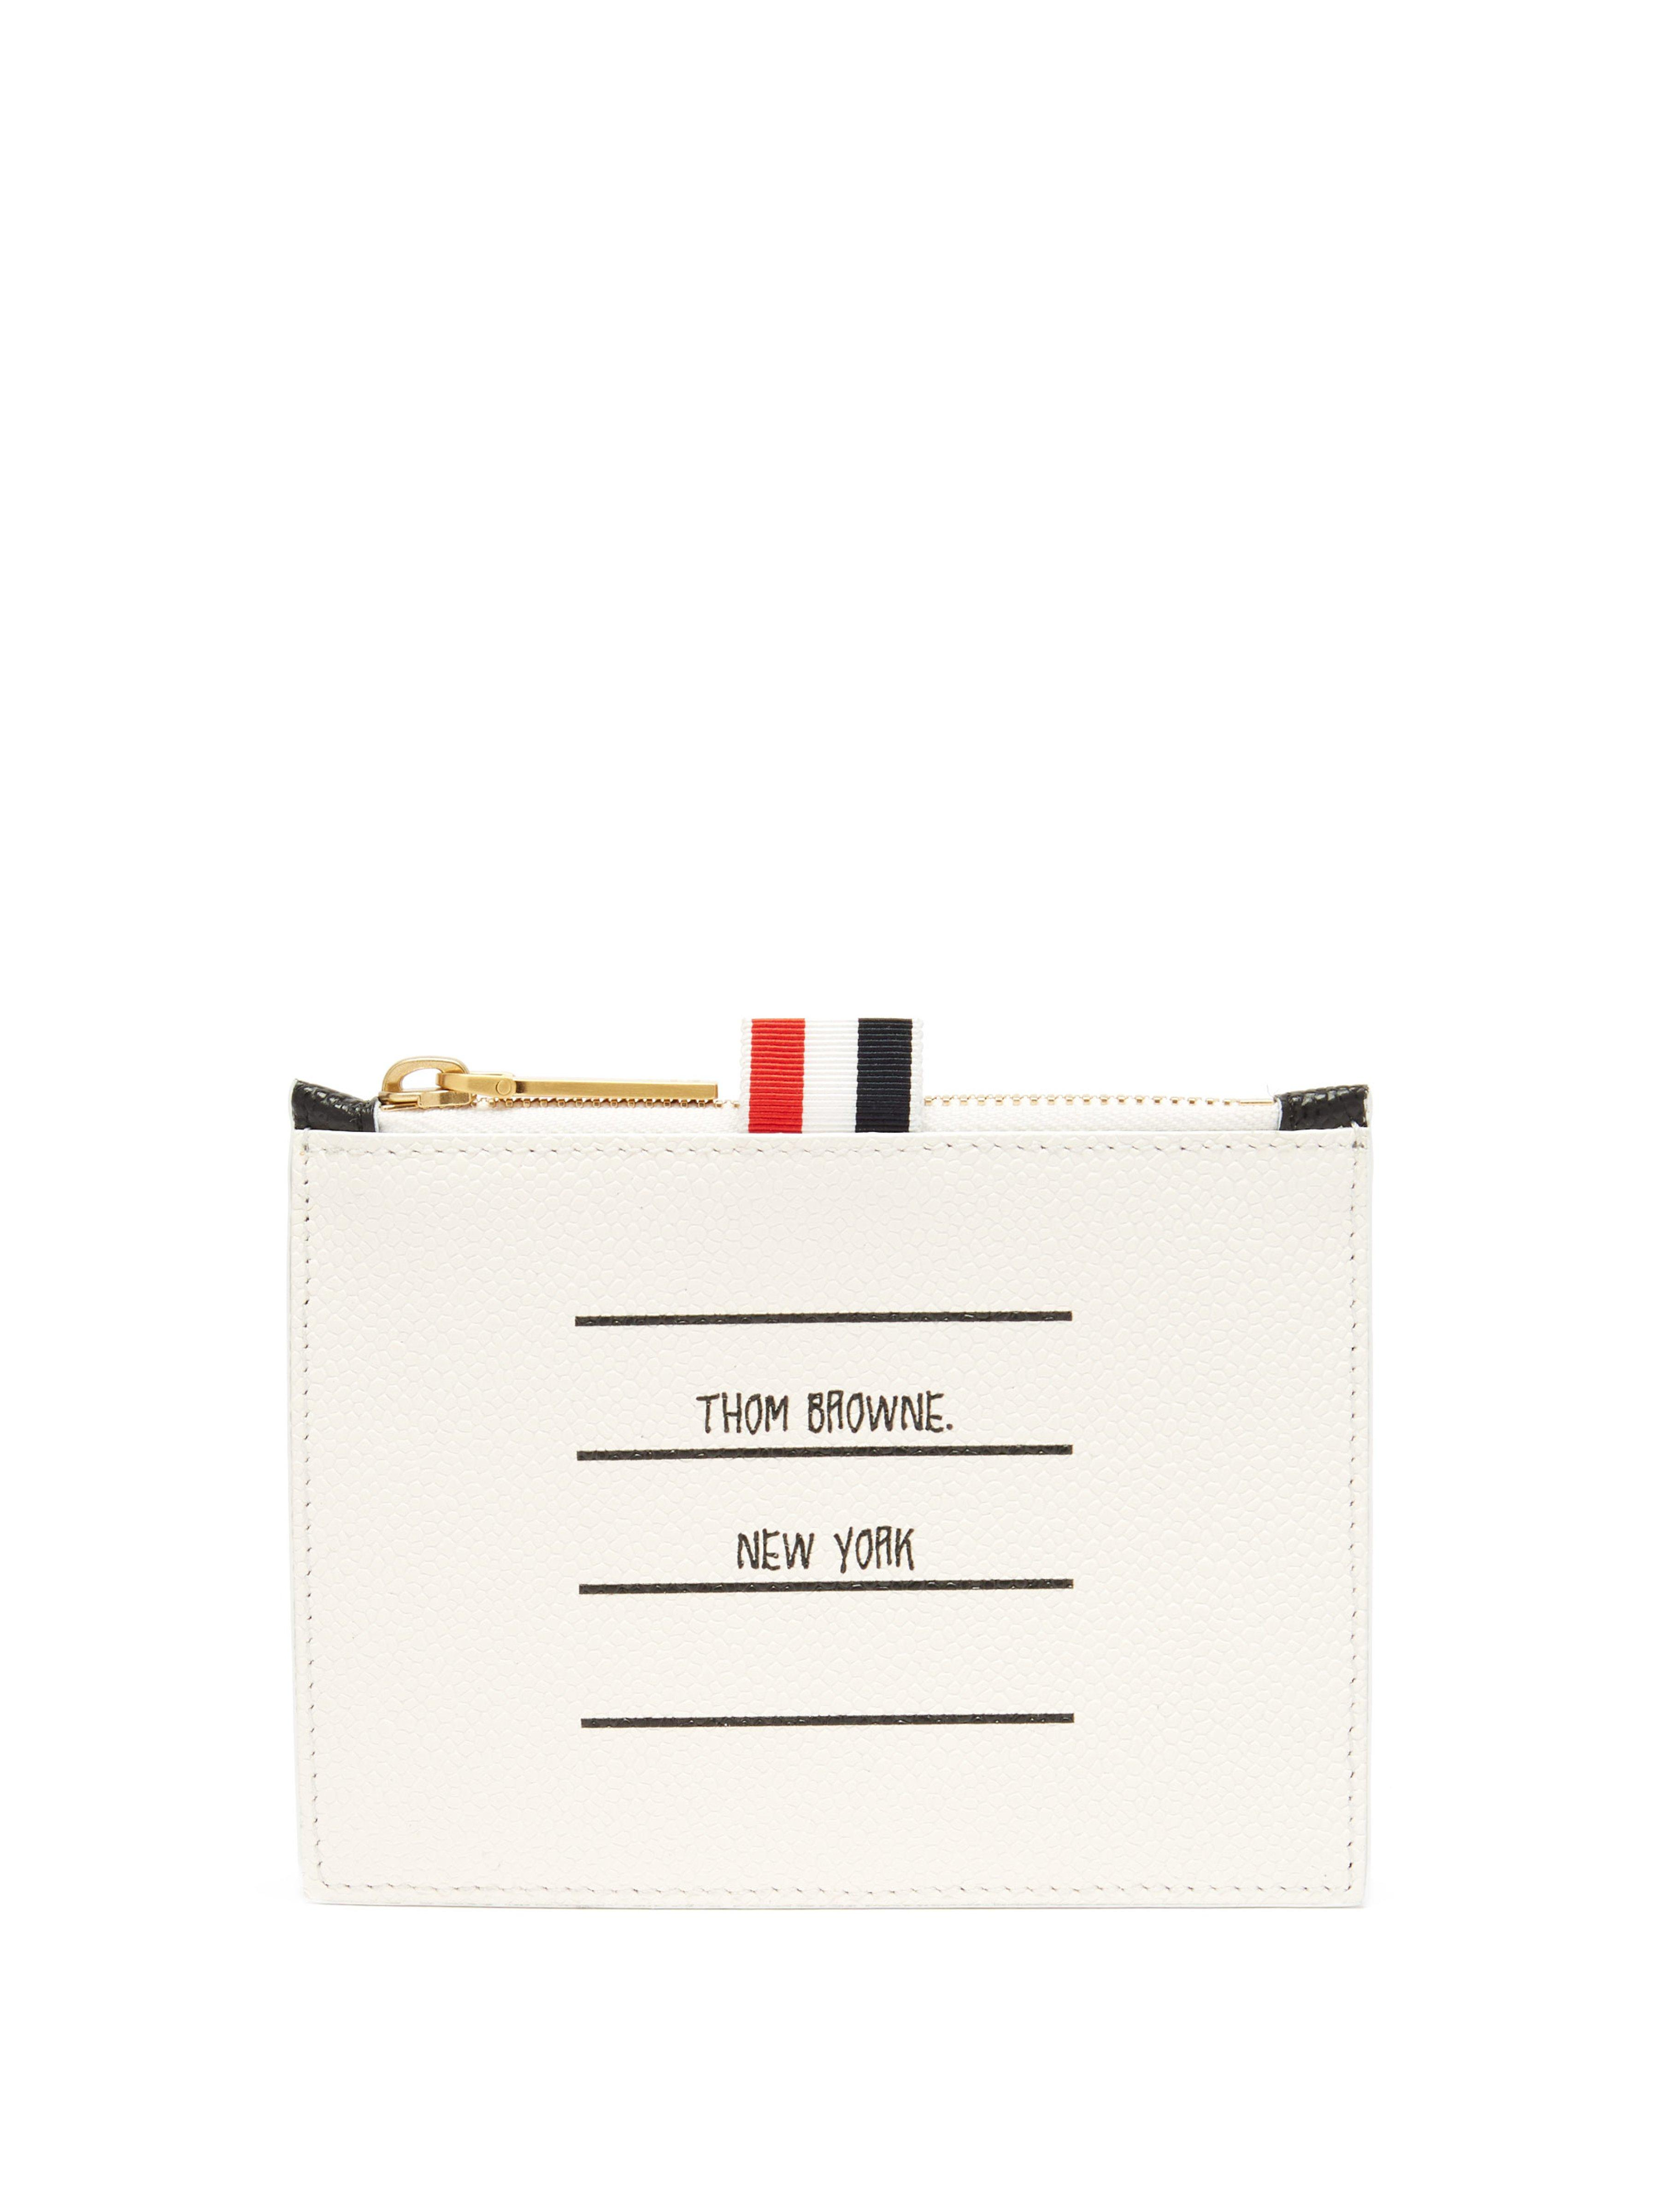 4331397f8827 Thom Browne Address Label Pebbled Leather Coin Purse in Black for ...